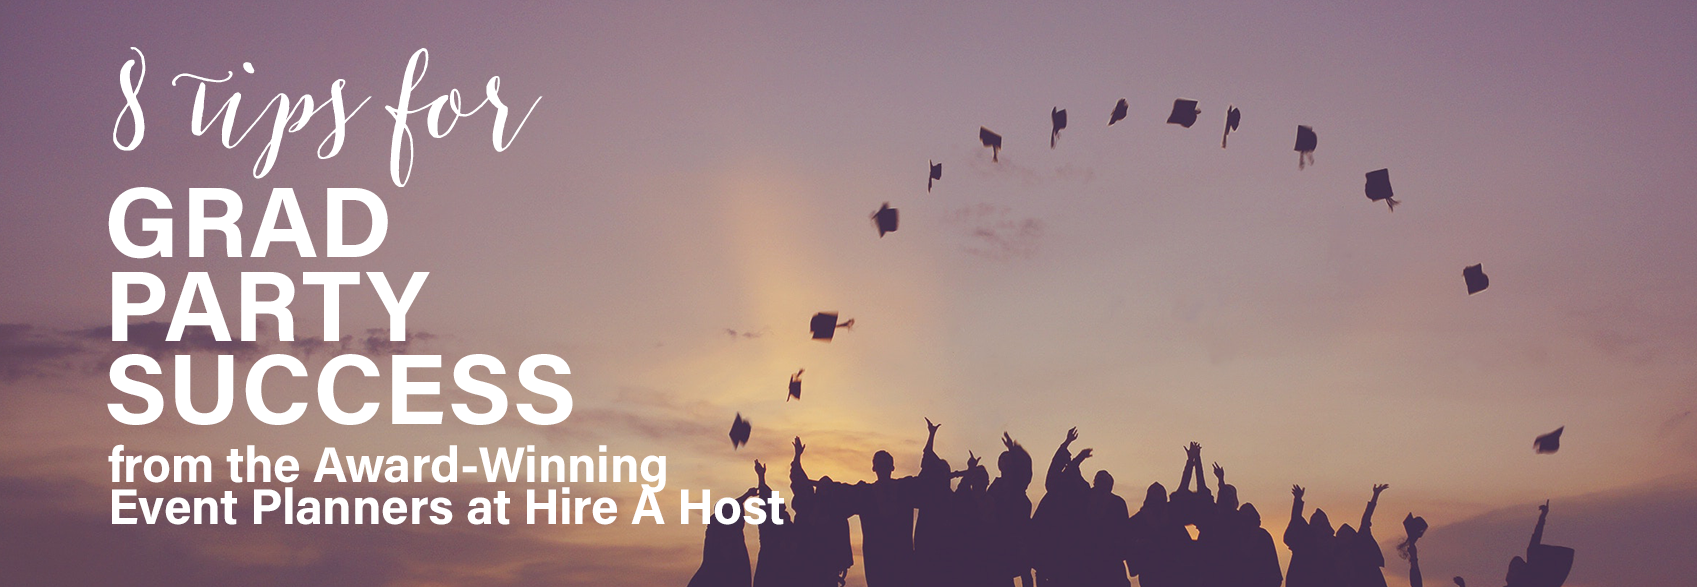 8 Tips for Grad Party Success 2018